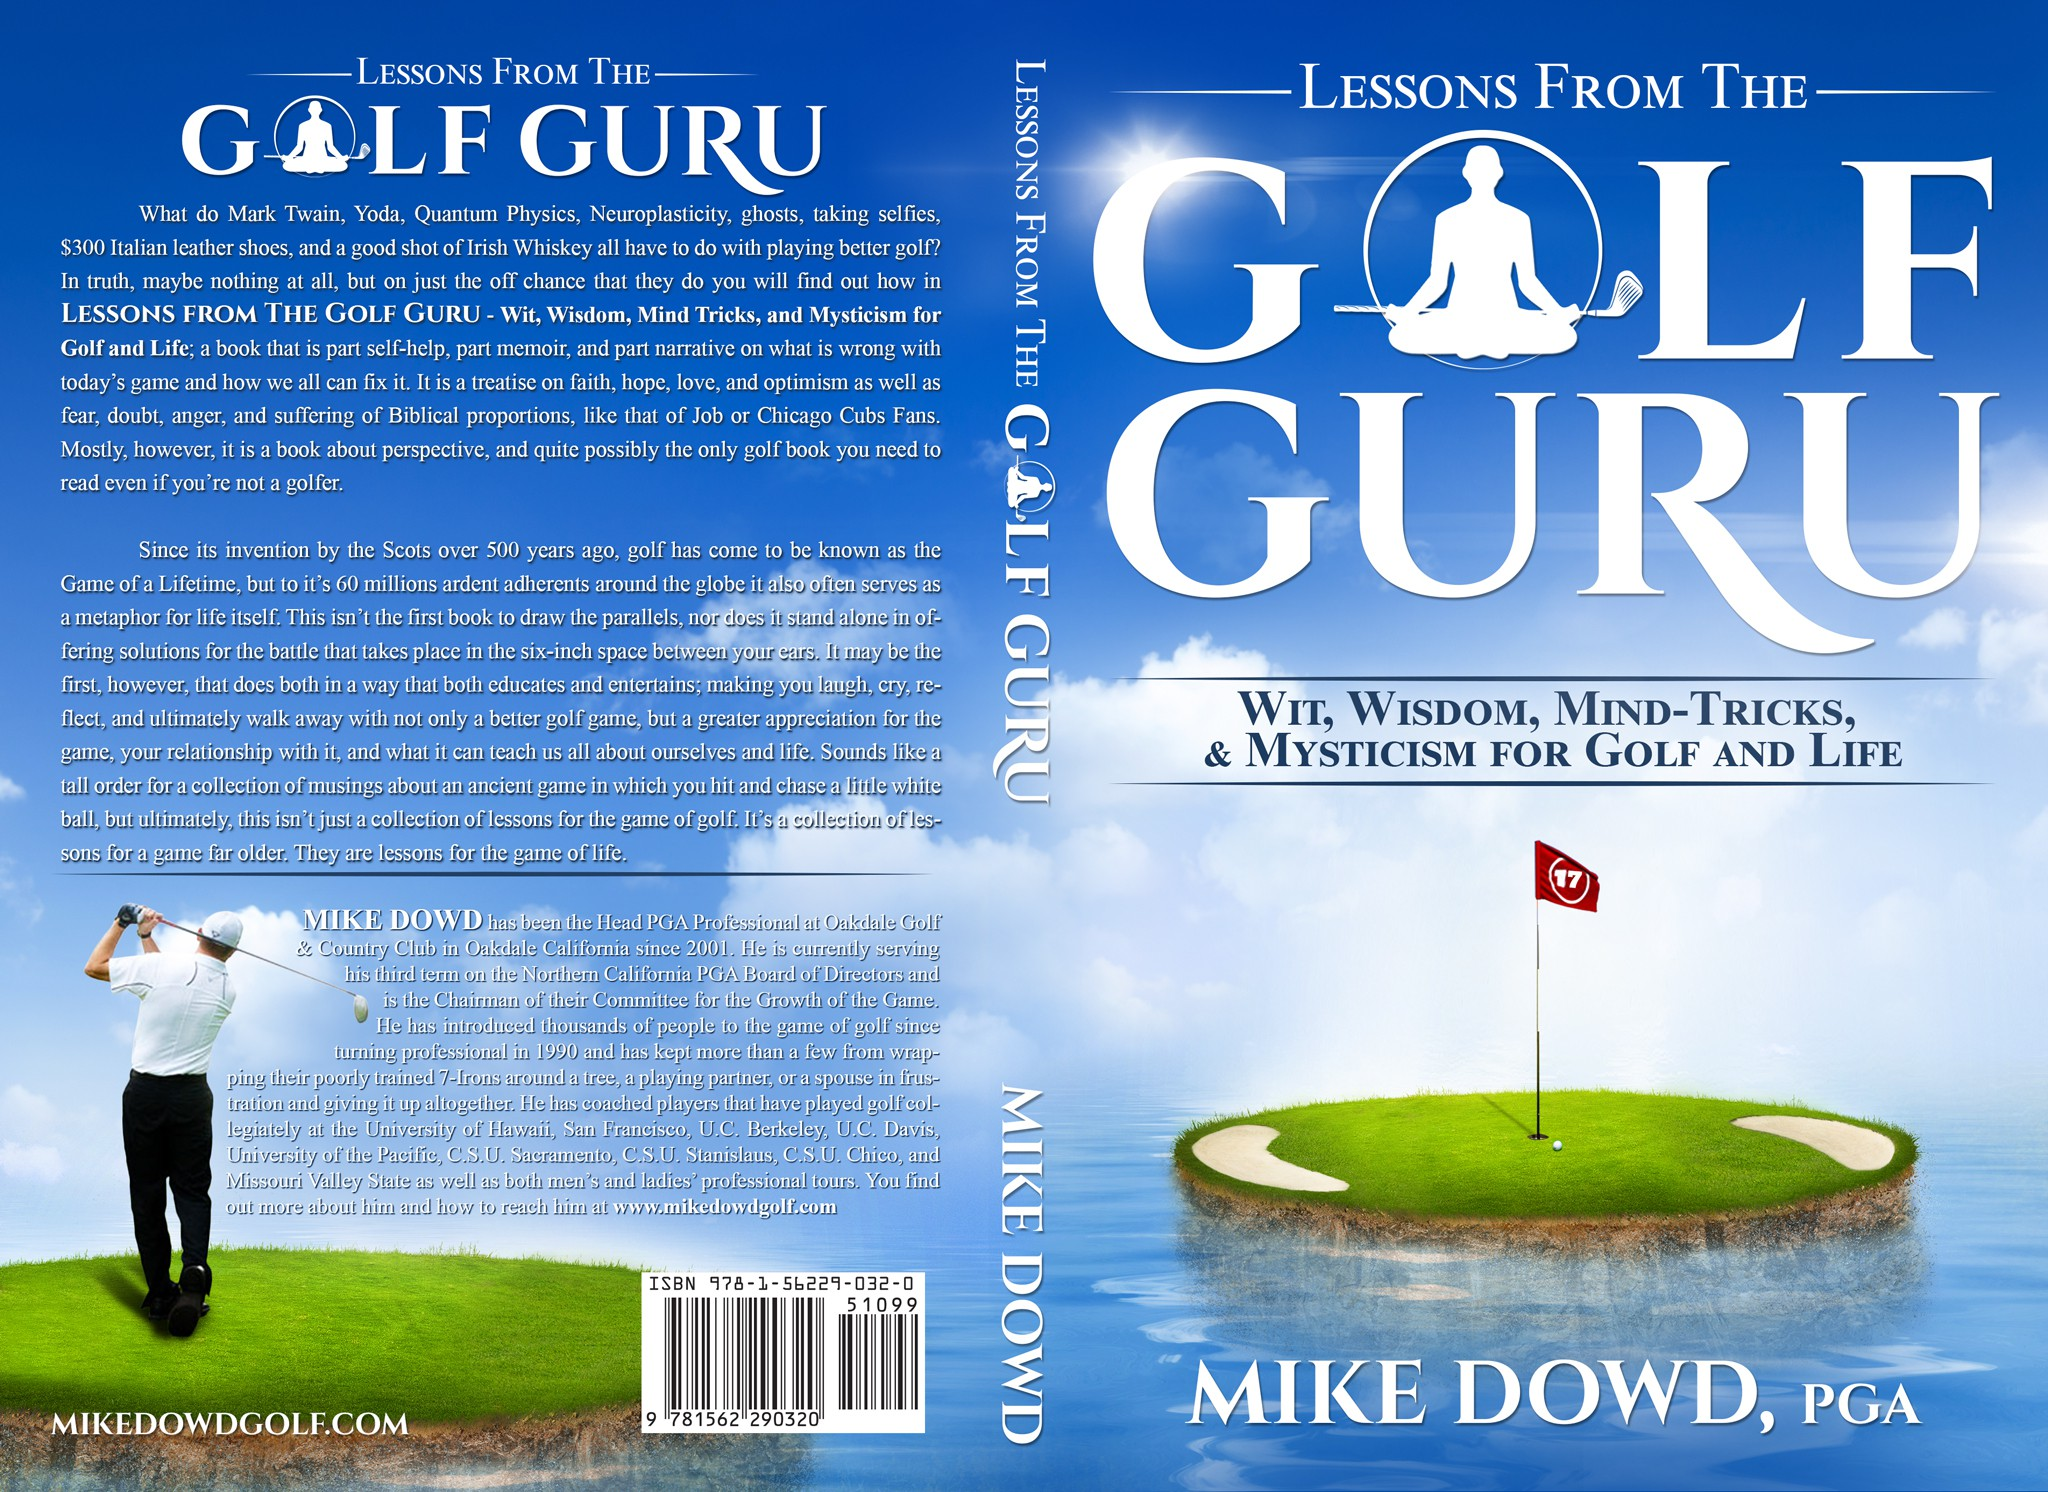 Create a uniquely artistic, mysterious, and captivating golf book cover with just a hint of humor